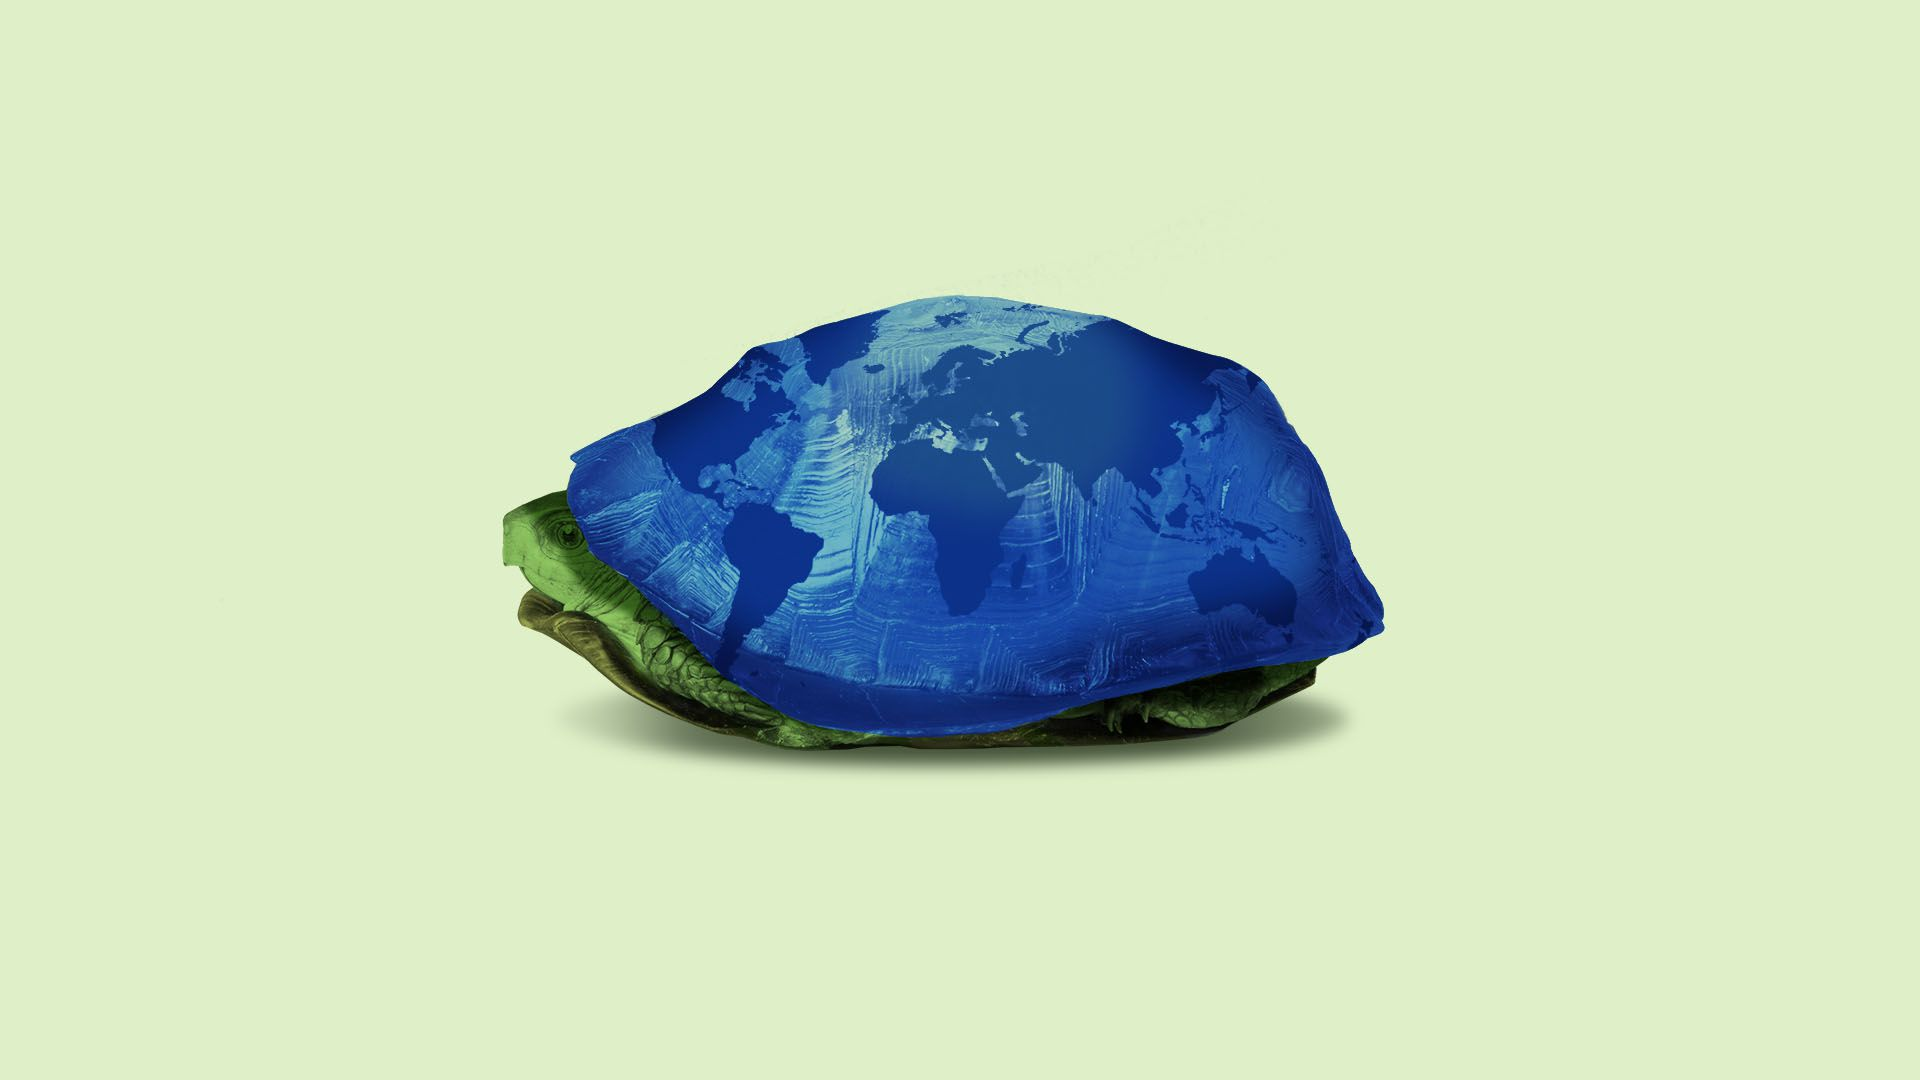 Illustration of a turtle with a globe design hiding in its shell